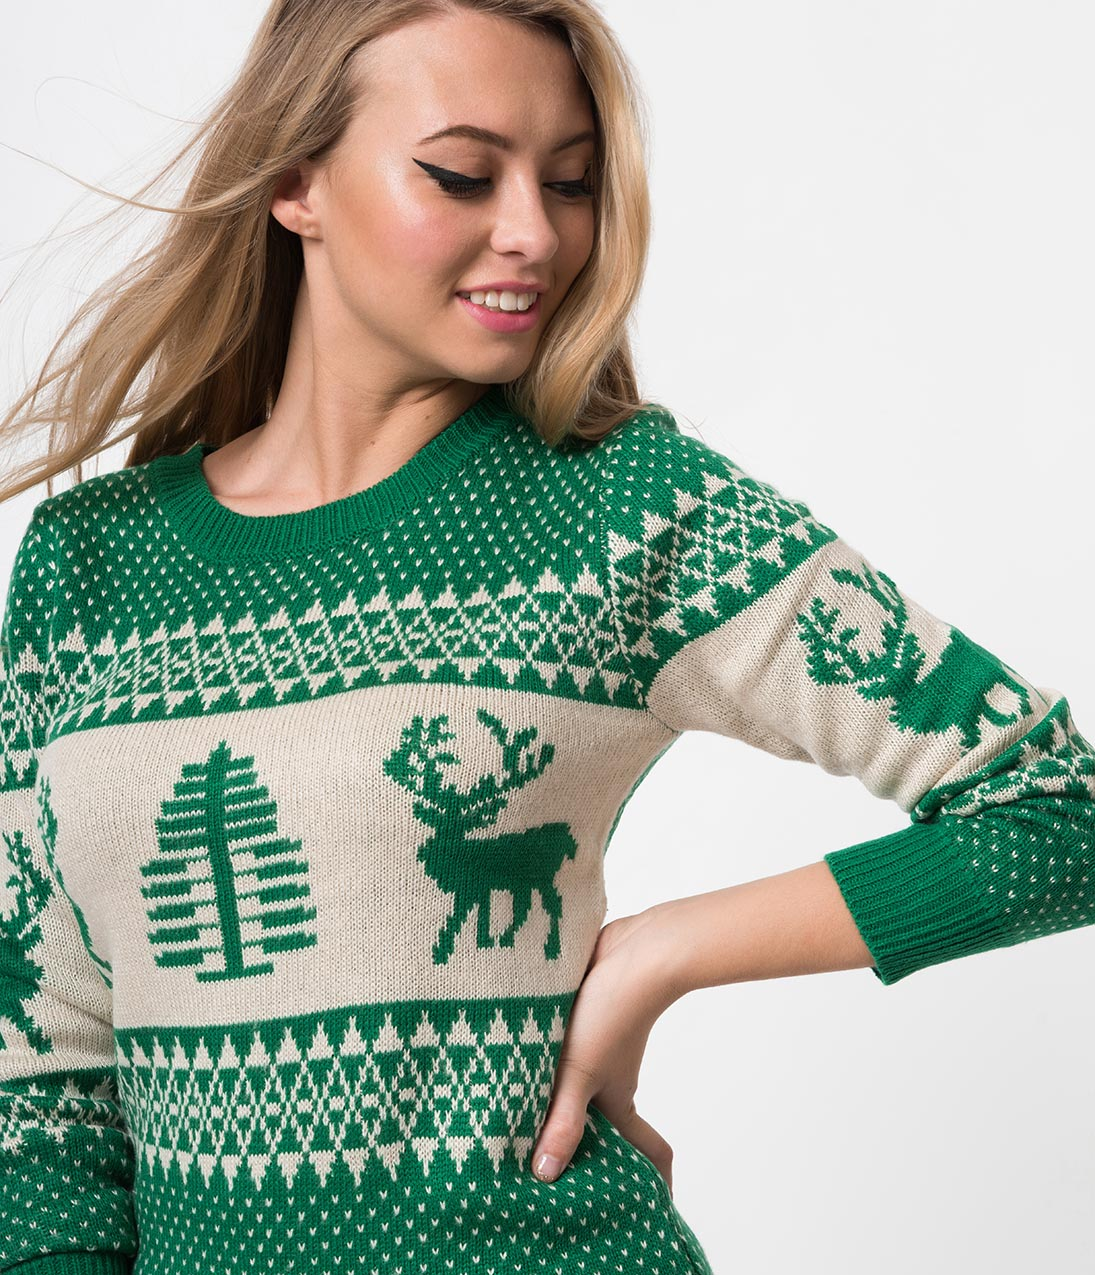 Vintage Sweaters: Cable Knit, Fair Isle Cardigans & Sweaters Green  Ivory Reindeer Long Sleeve Knit Sweater $29.00 AT vintagedancer.com